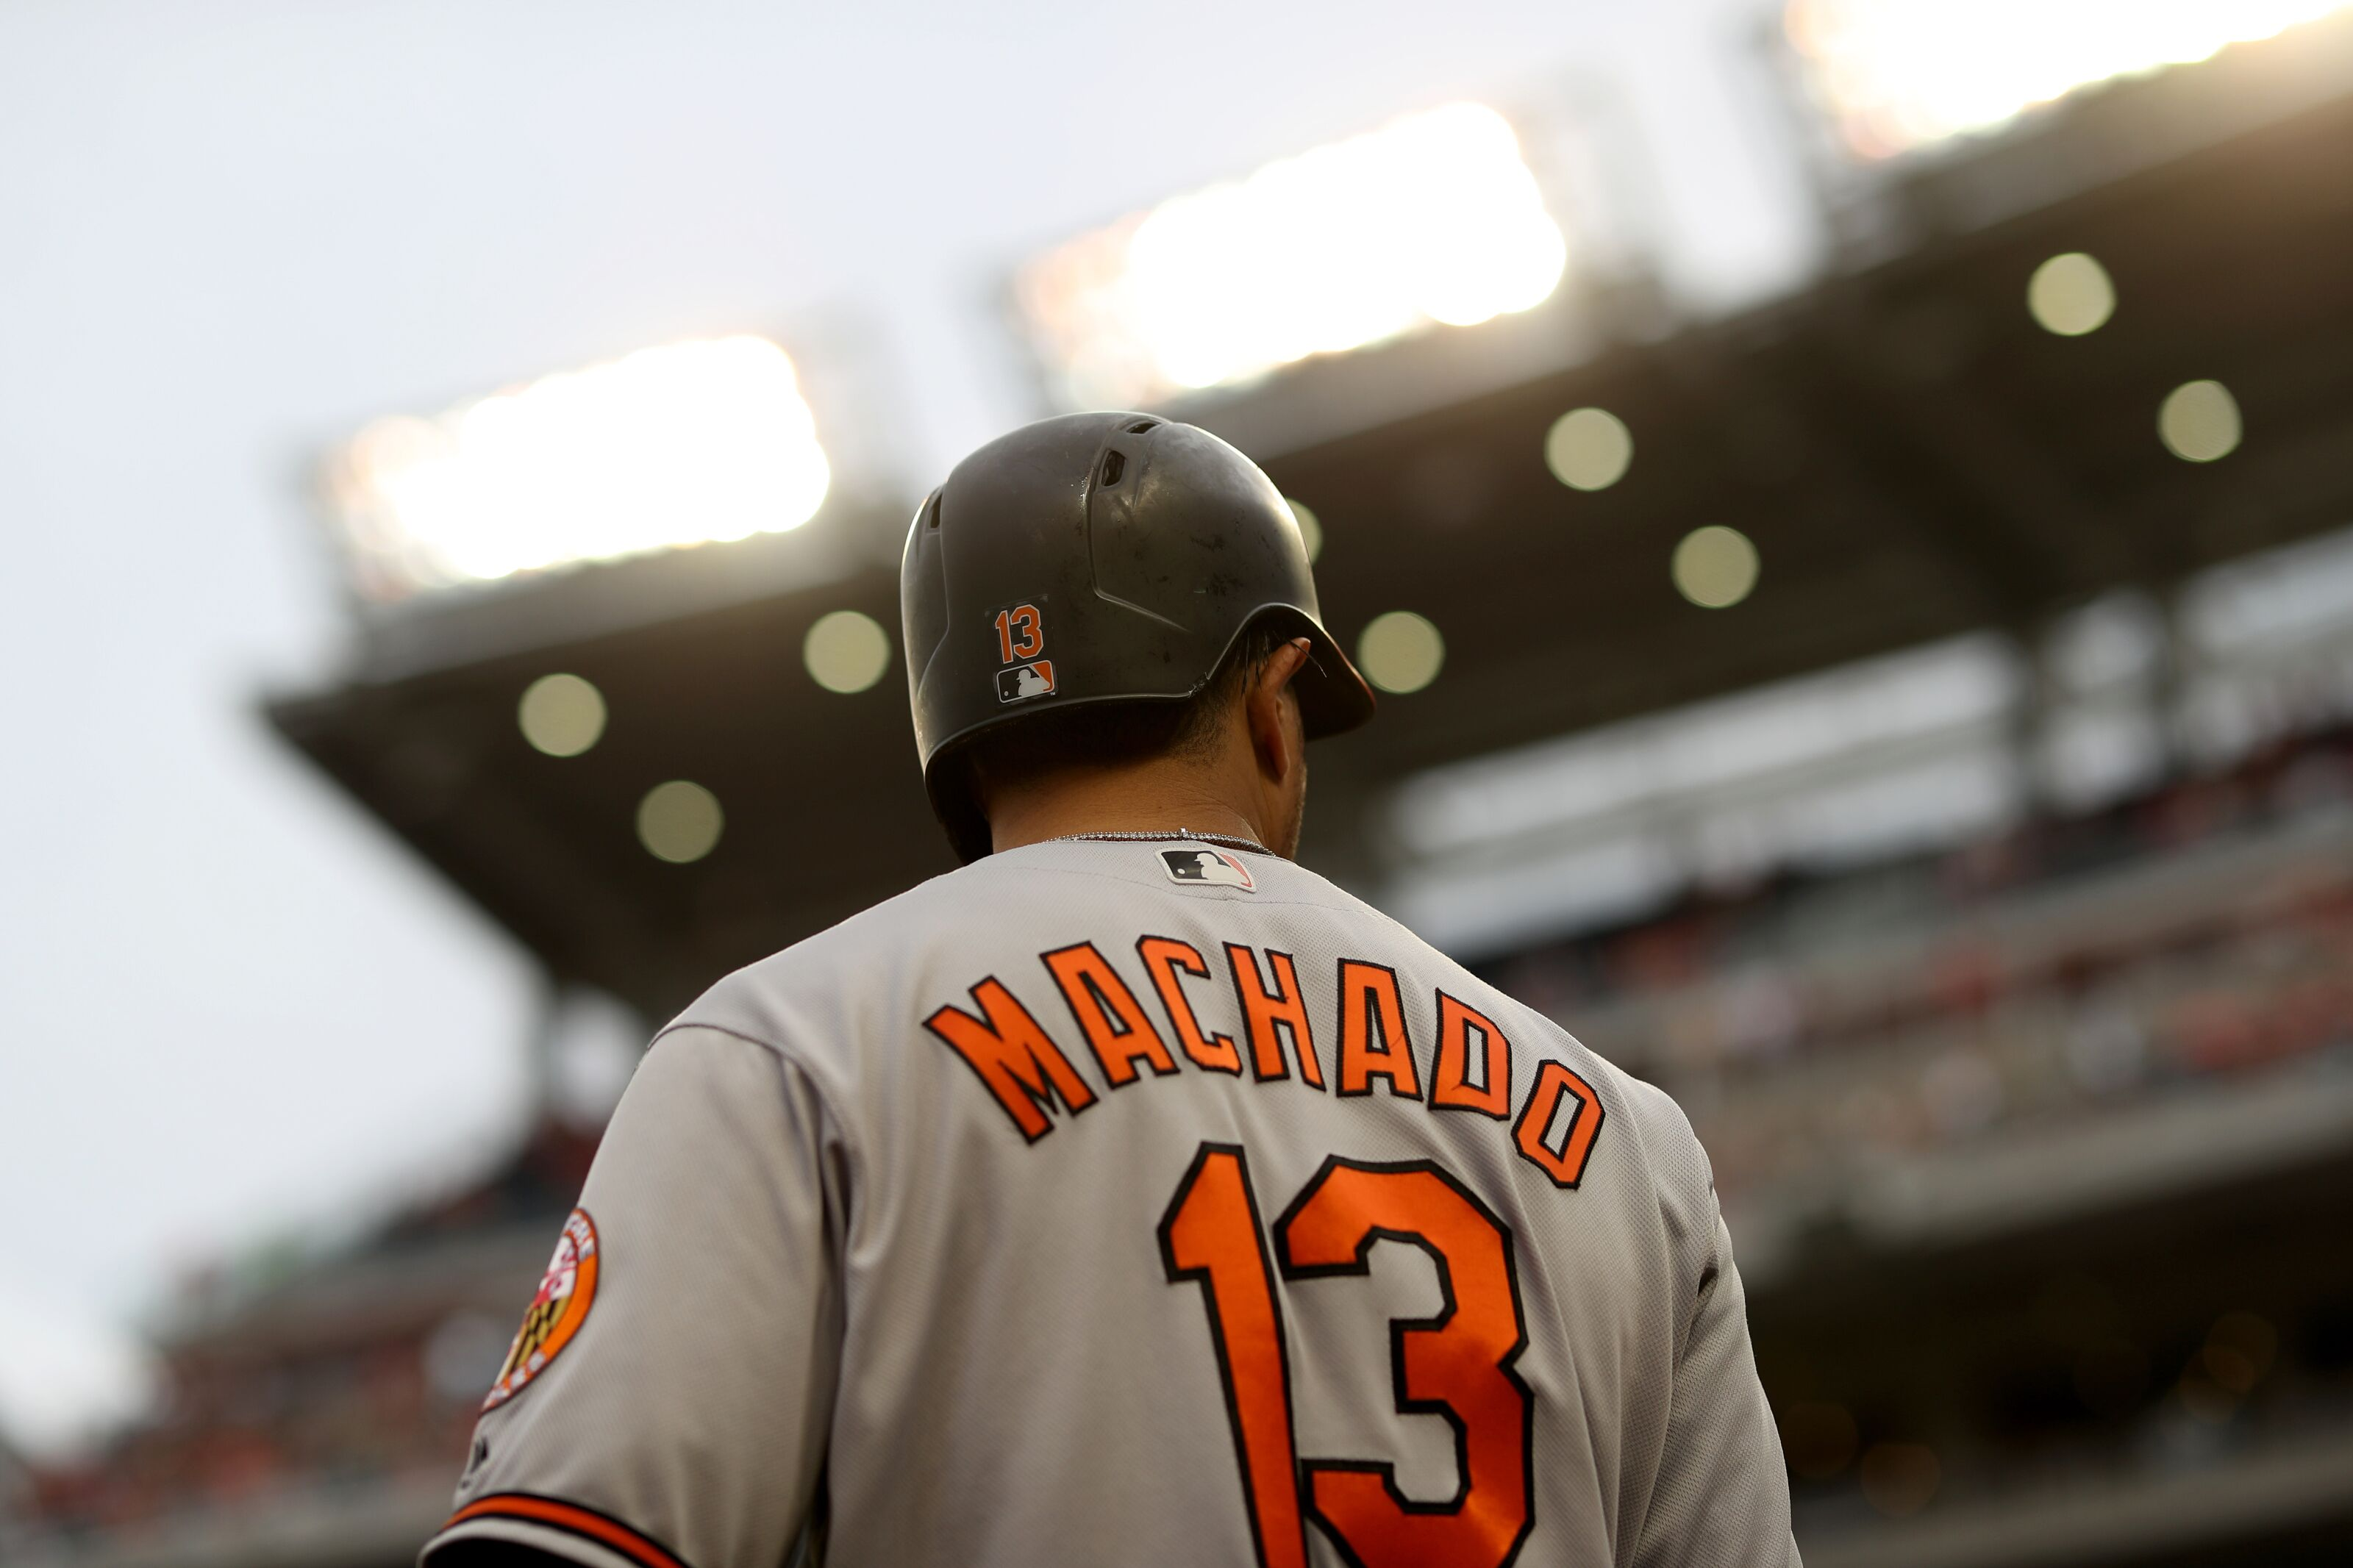 adc35454102 Baltimore Orioles  Manny Machado and the free agent market